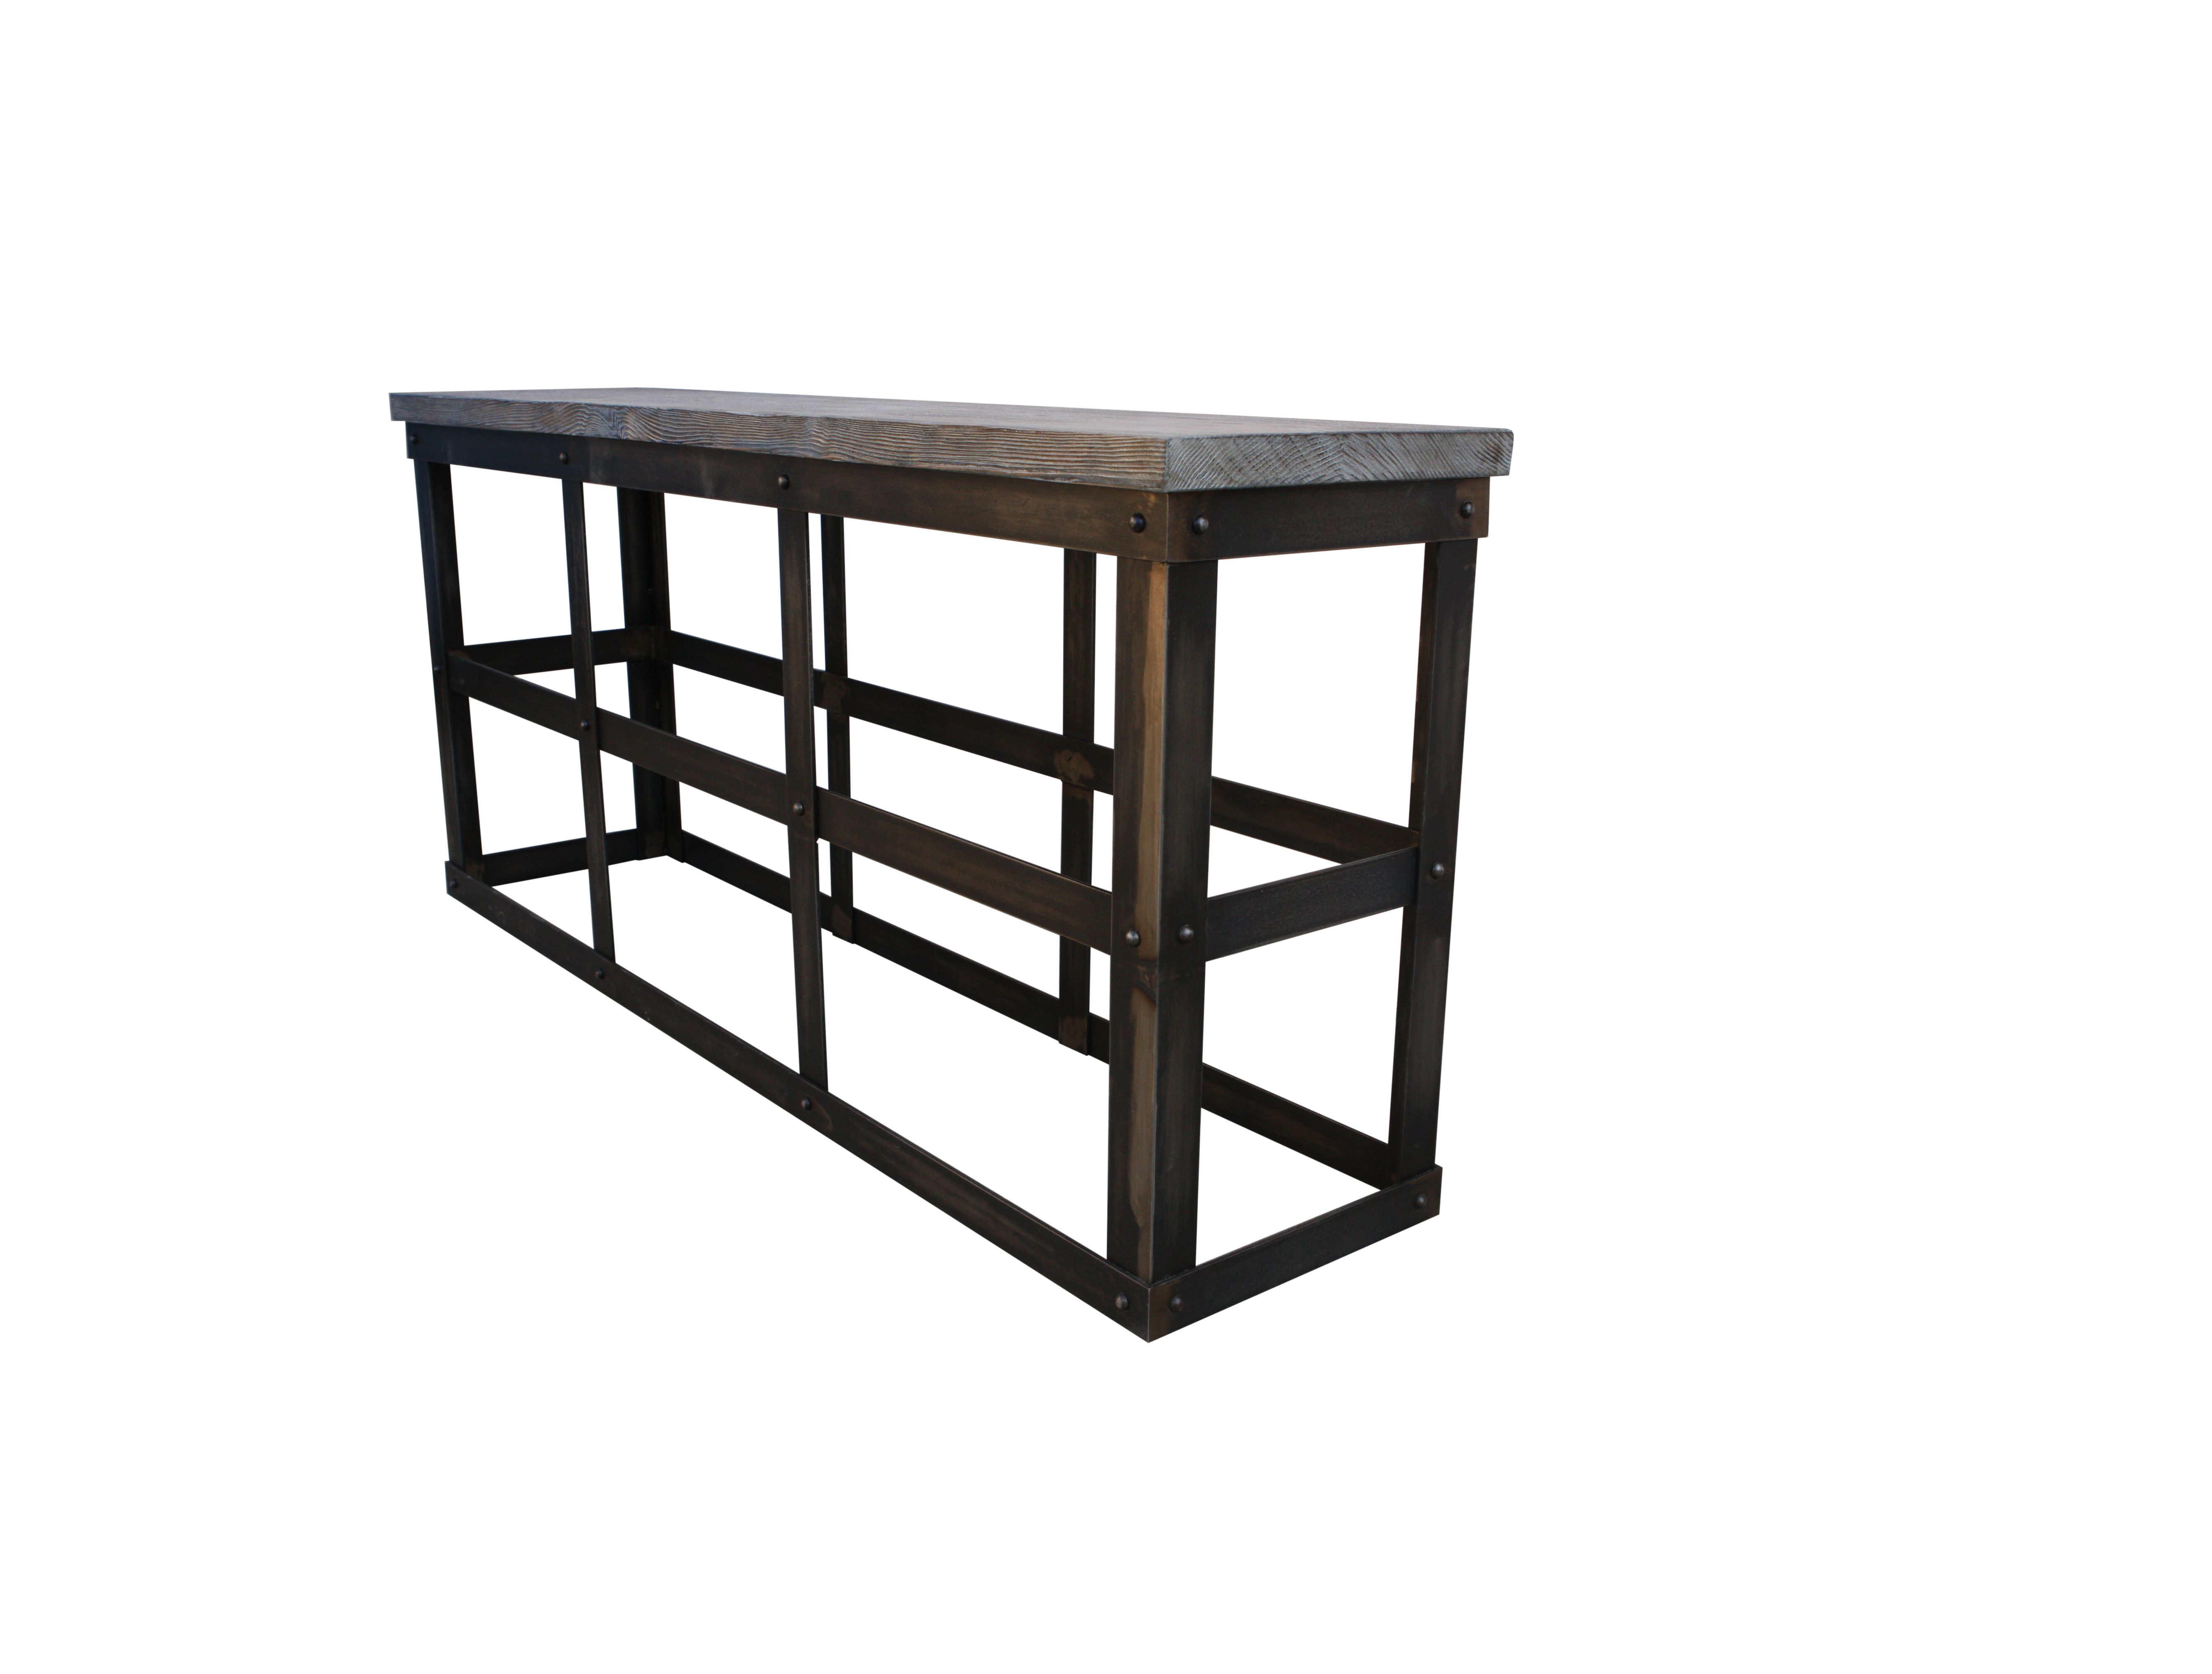 Haven't really seen an #Industrial #Sofa #Table - I like it!